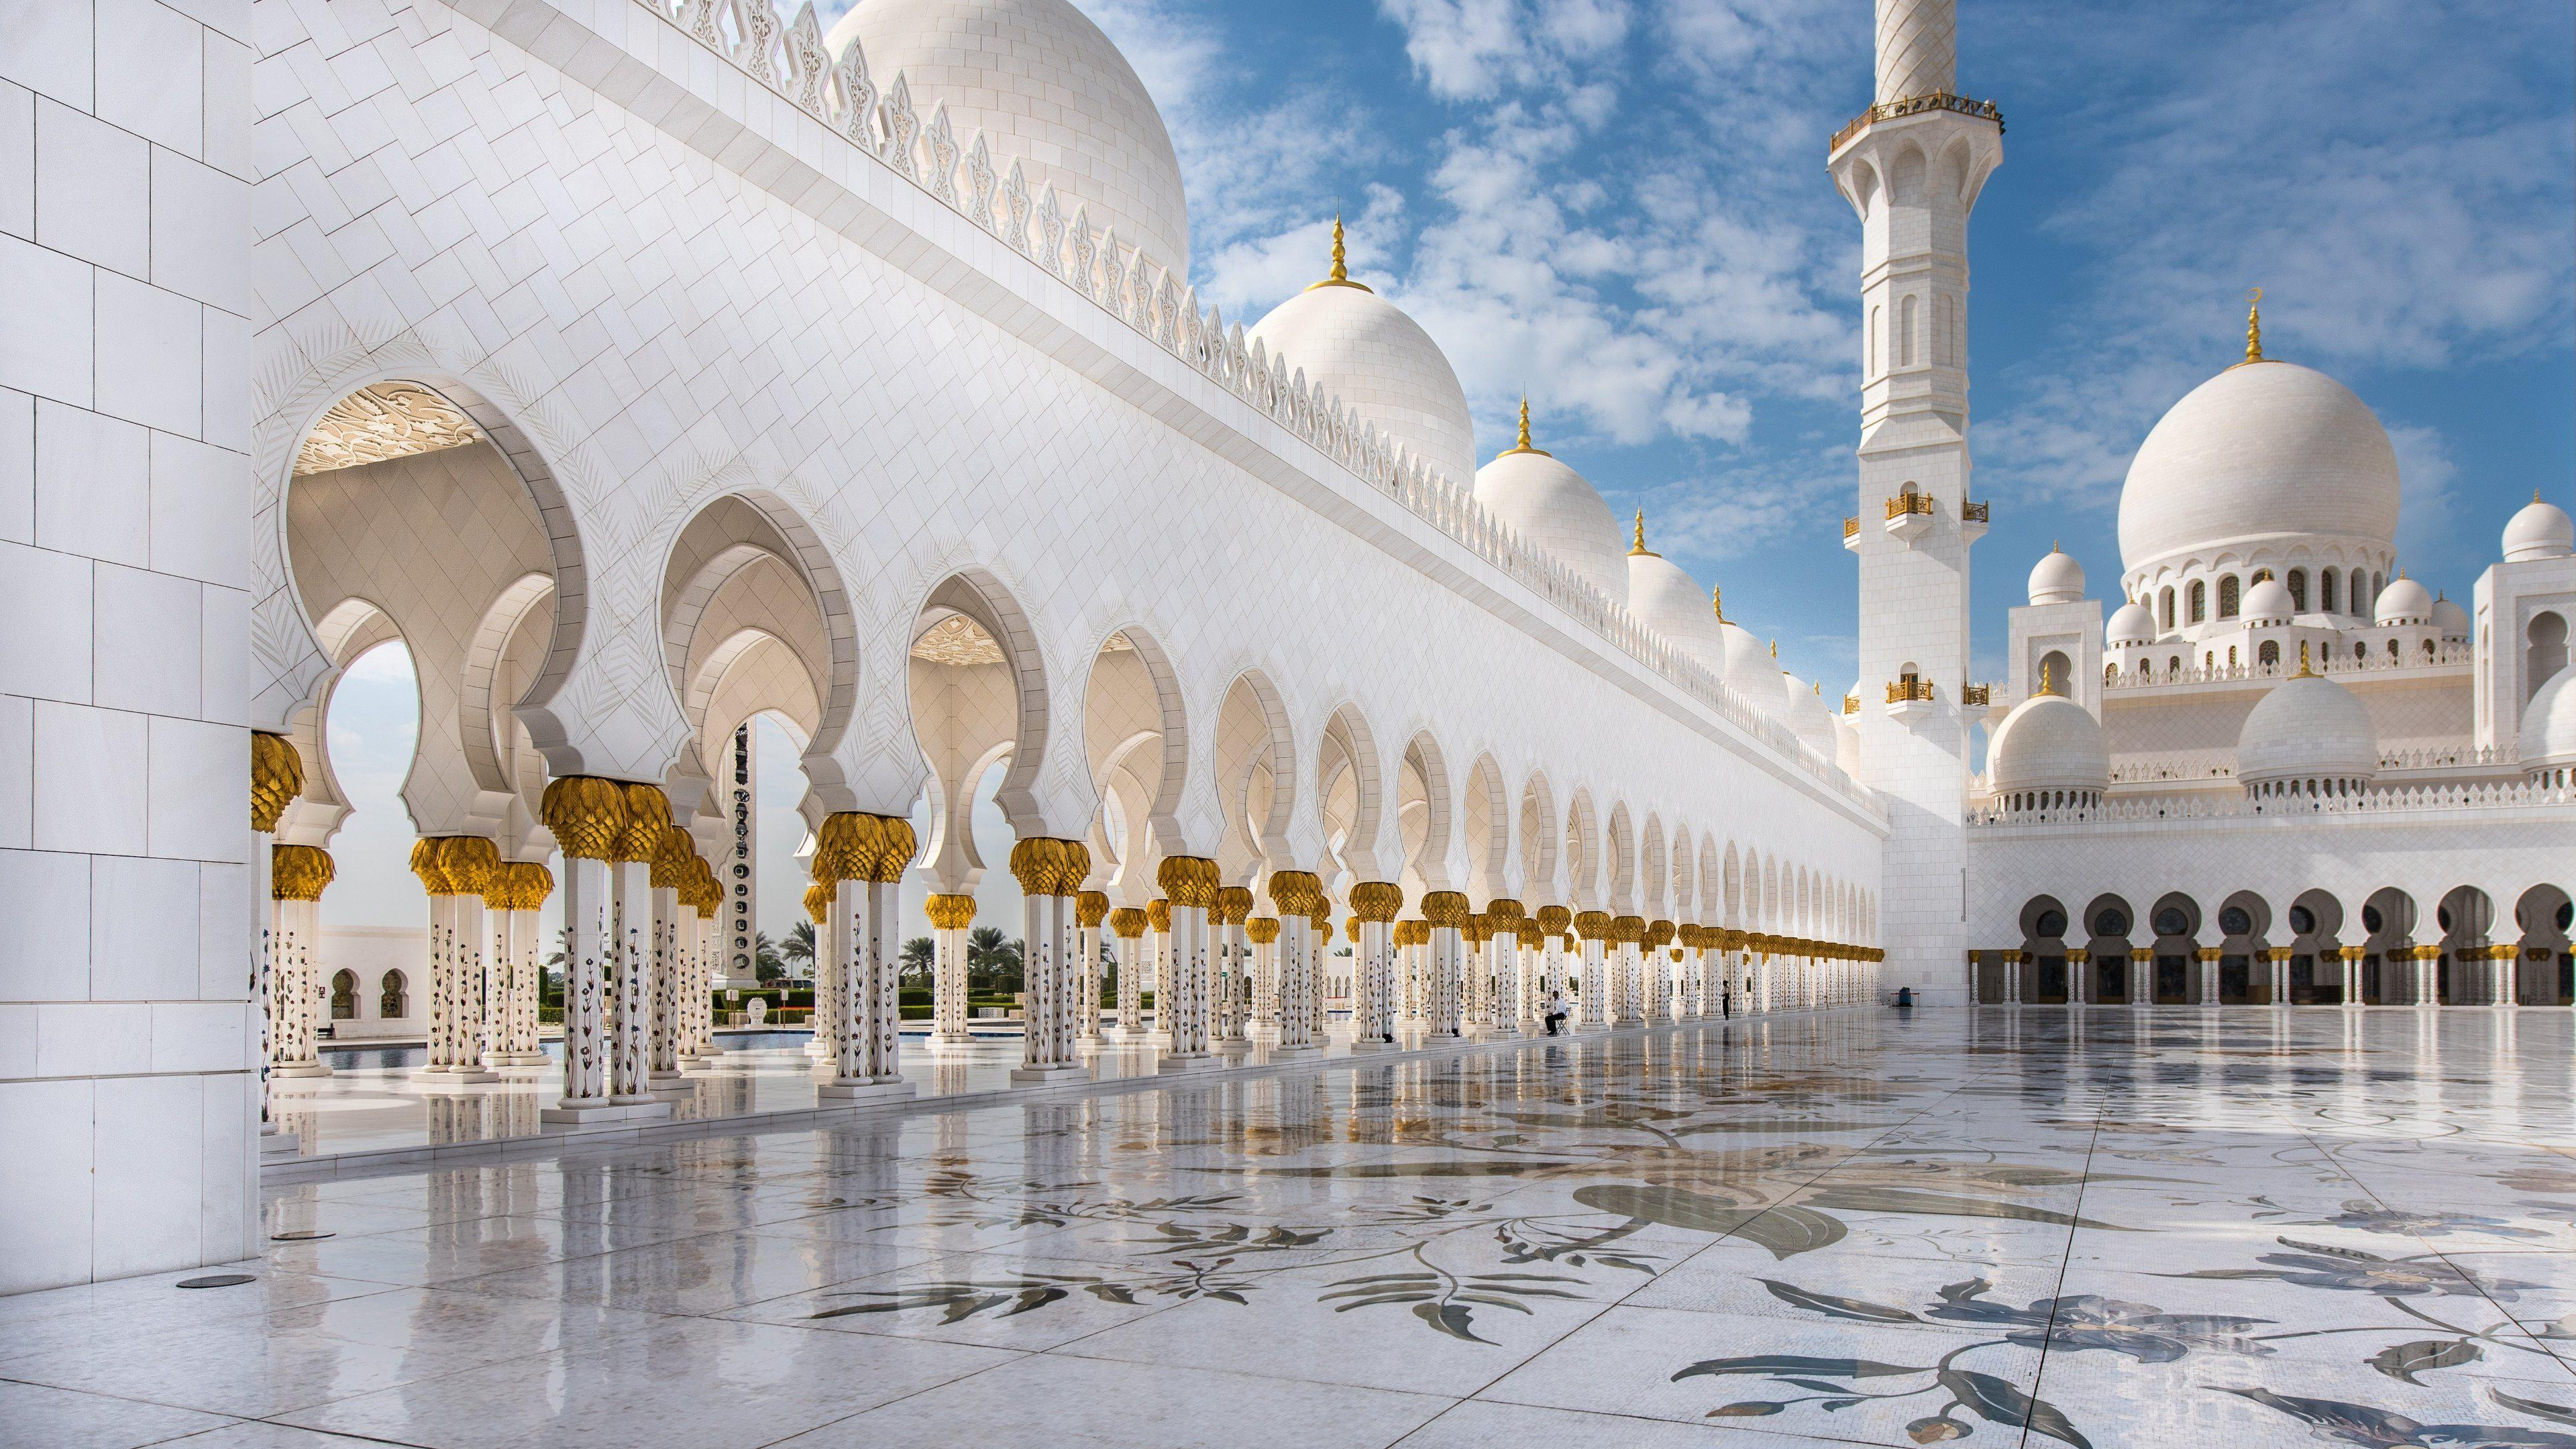 Abu Dhabi Mosque Wallpapers in HD, 4K and wide sizes